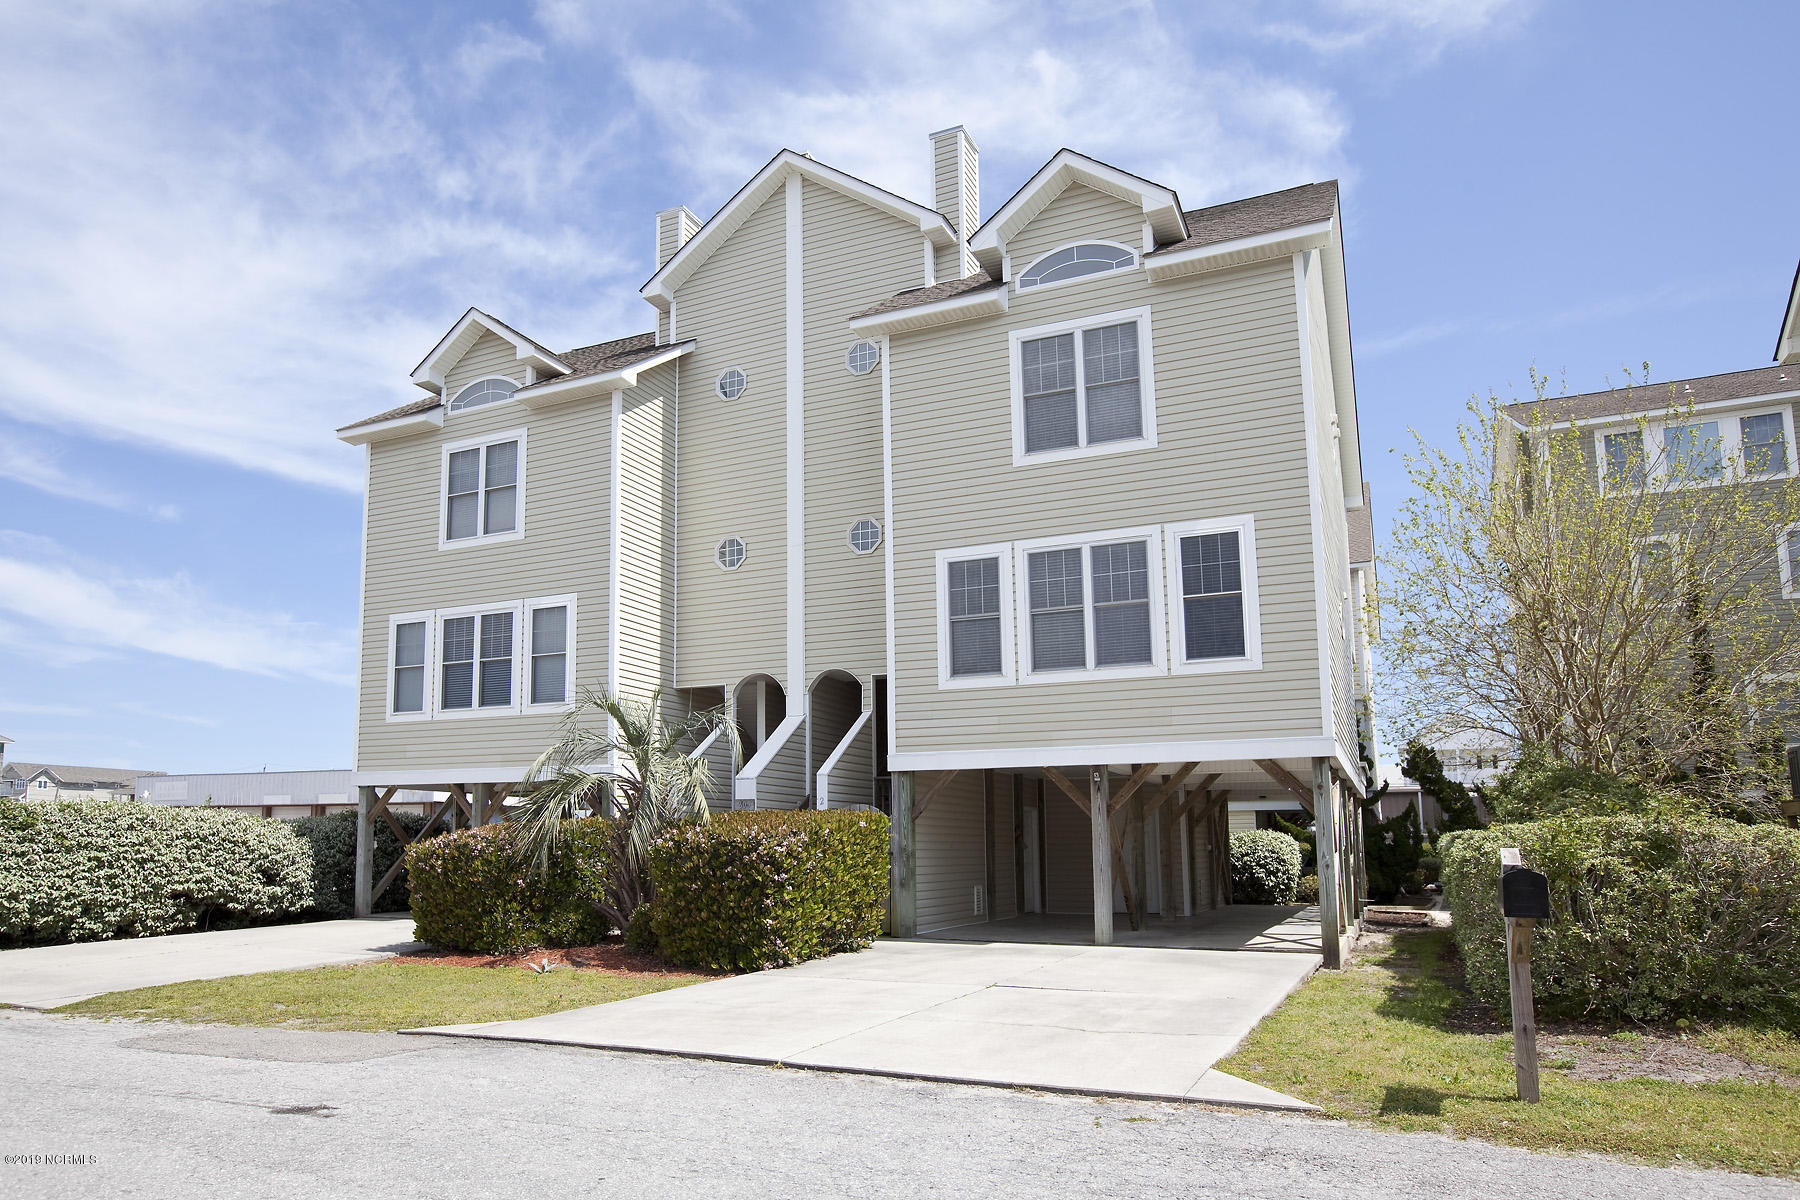 805 S Second Street #2 Carolina Beach, NC 28428